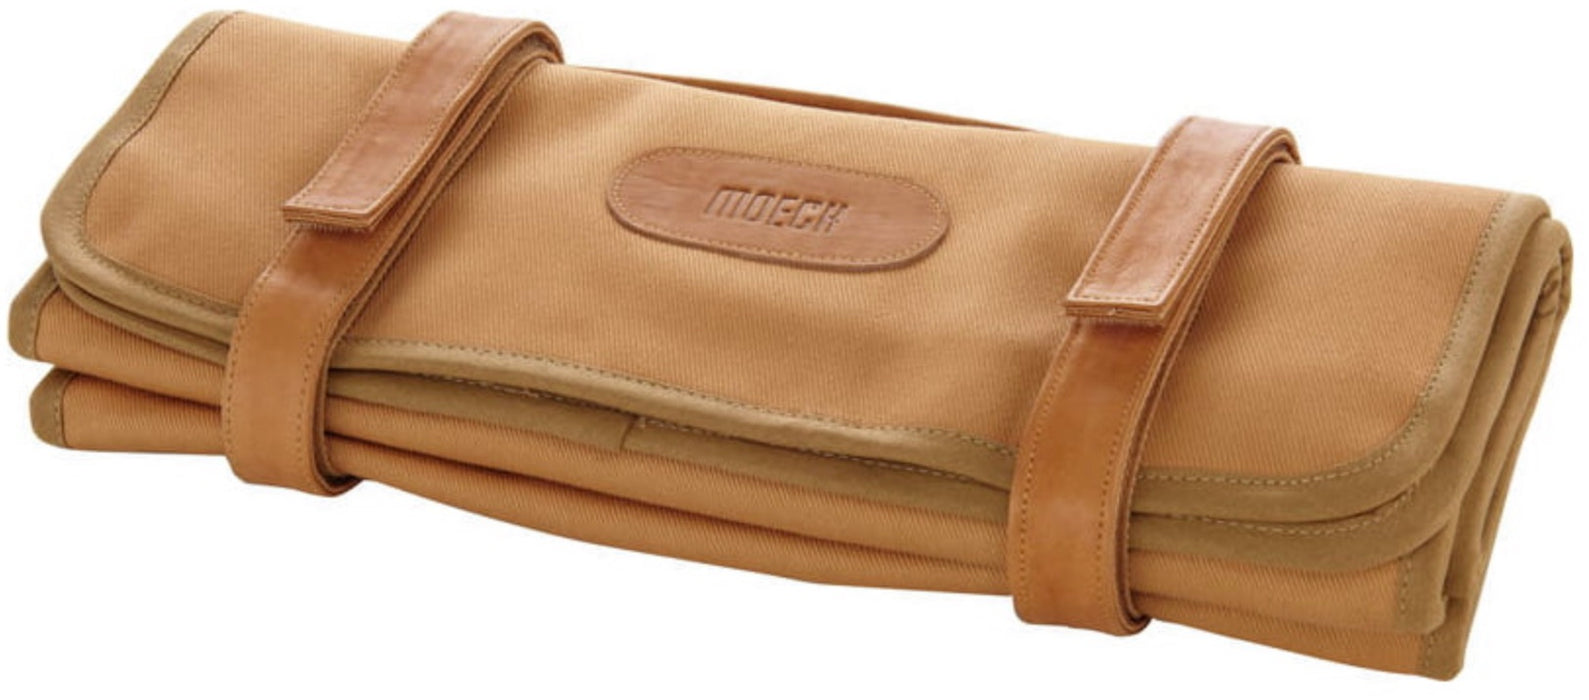 Moeck Z1004 12-Slot Roll Bag for 4-7 Recorders